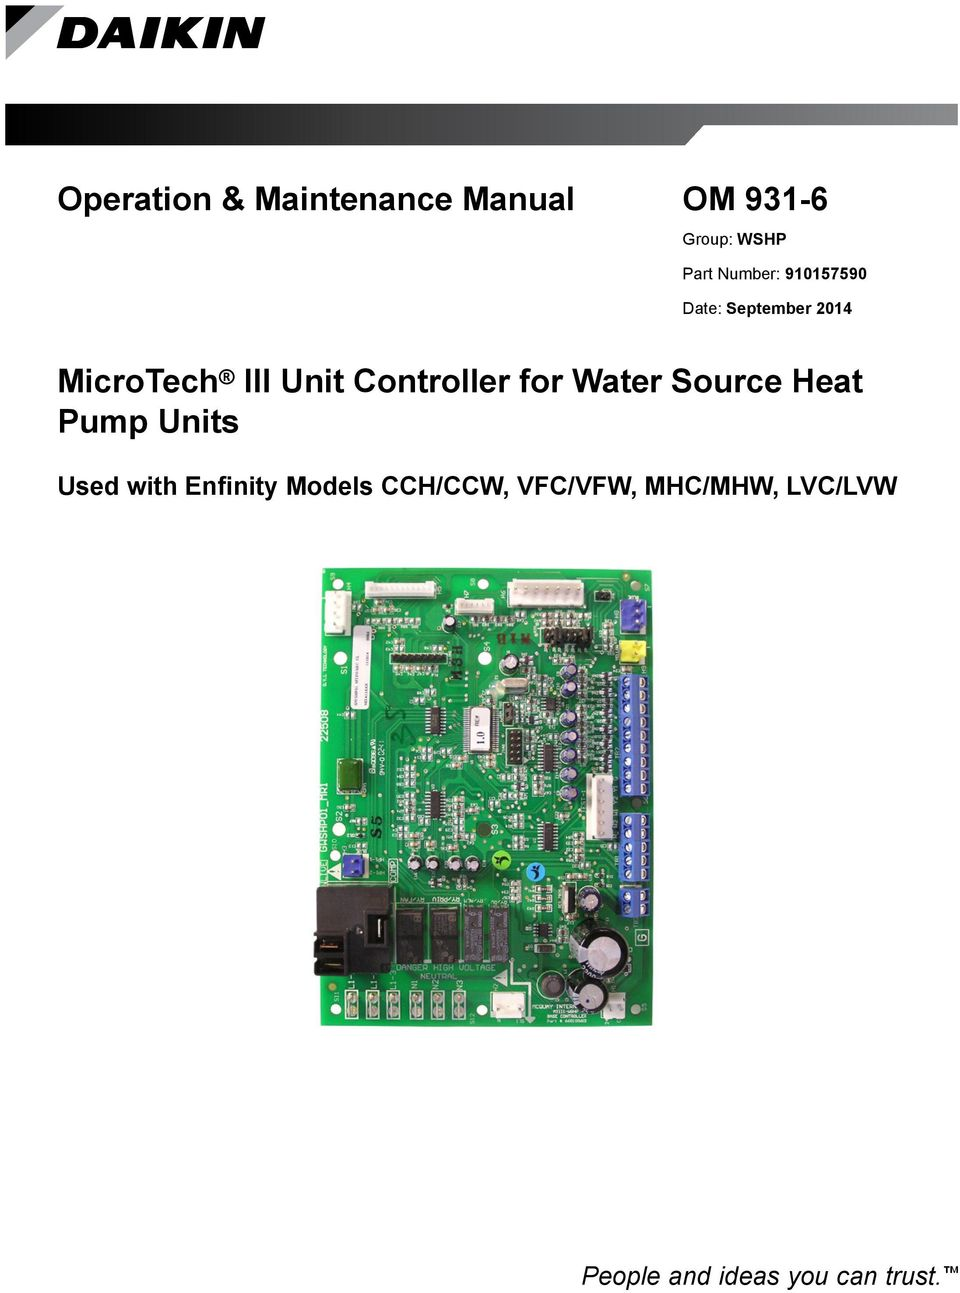 Controller for Water Source Heat Pump Units Used with Enfinity